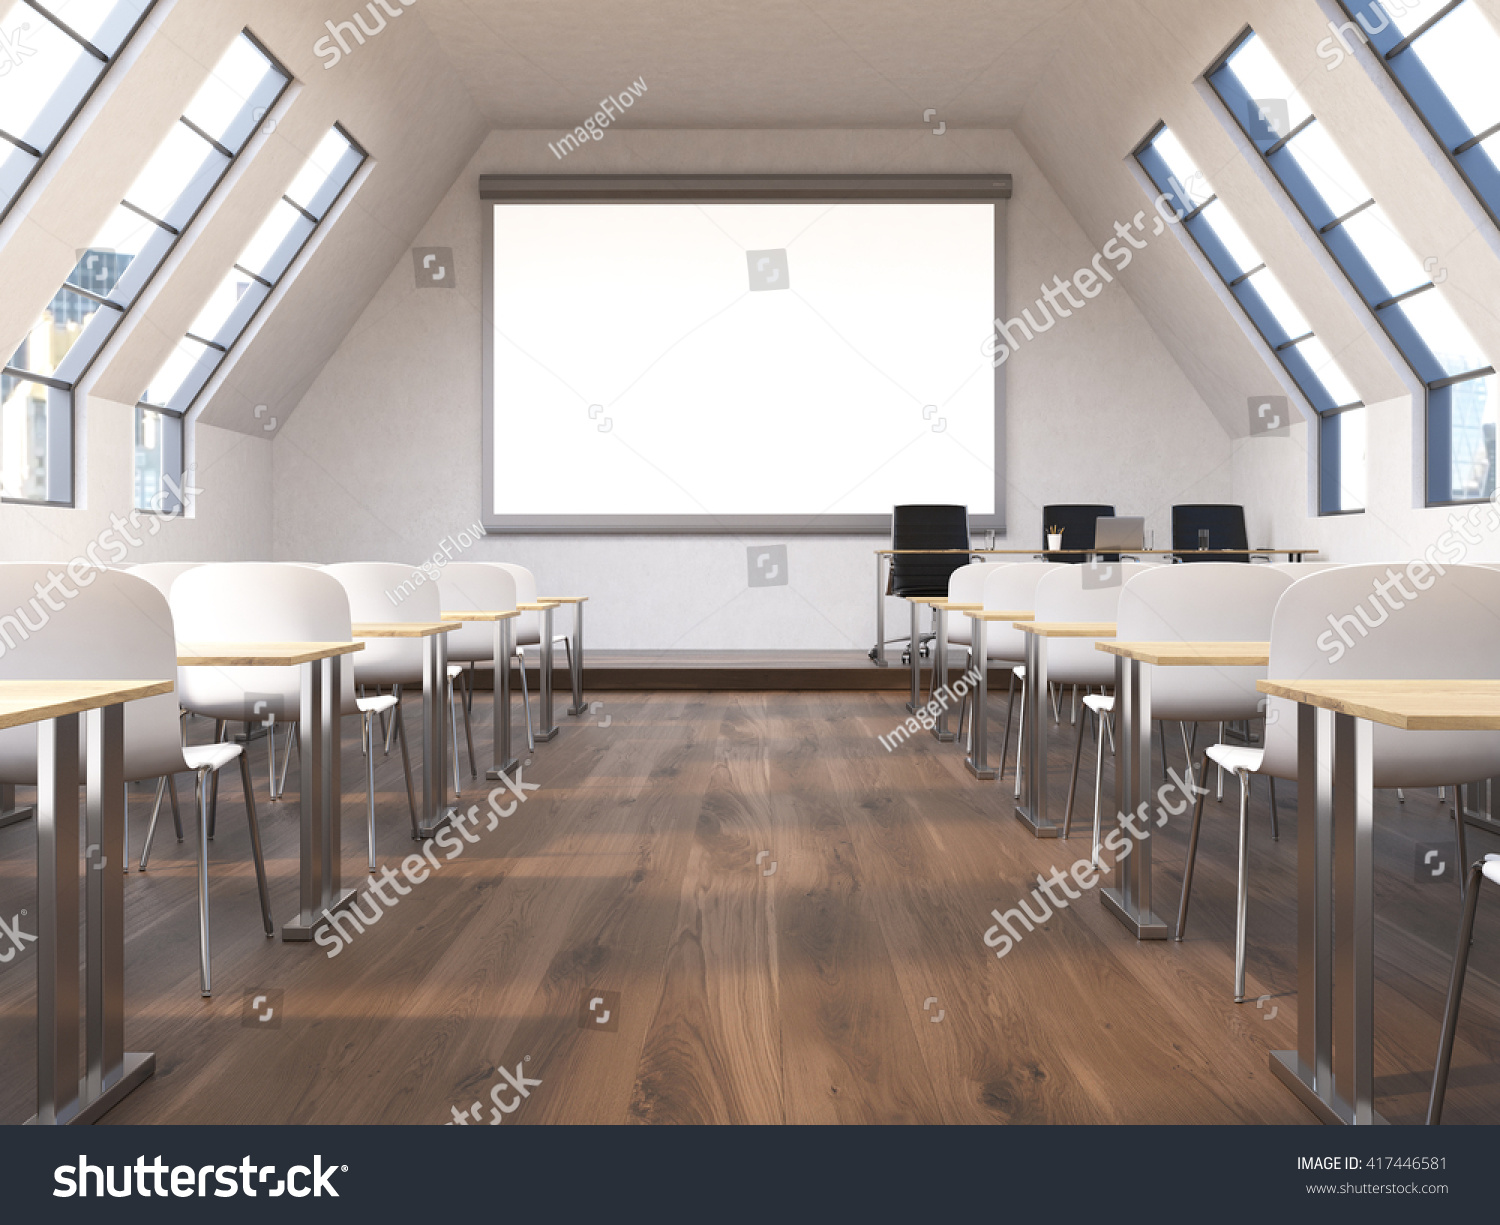 front view classroom interior blank whiteboard stock illustration